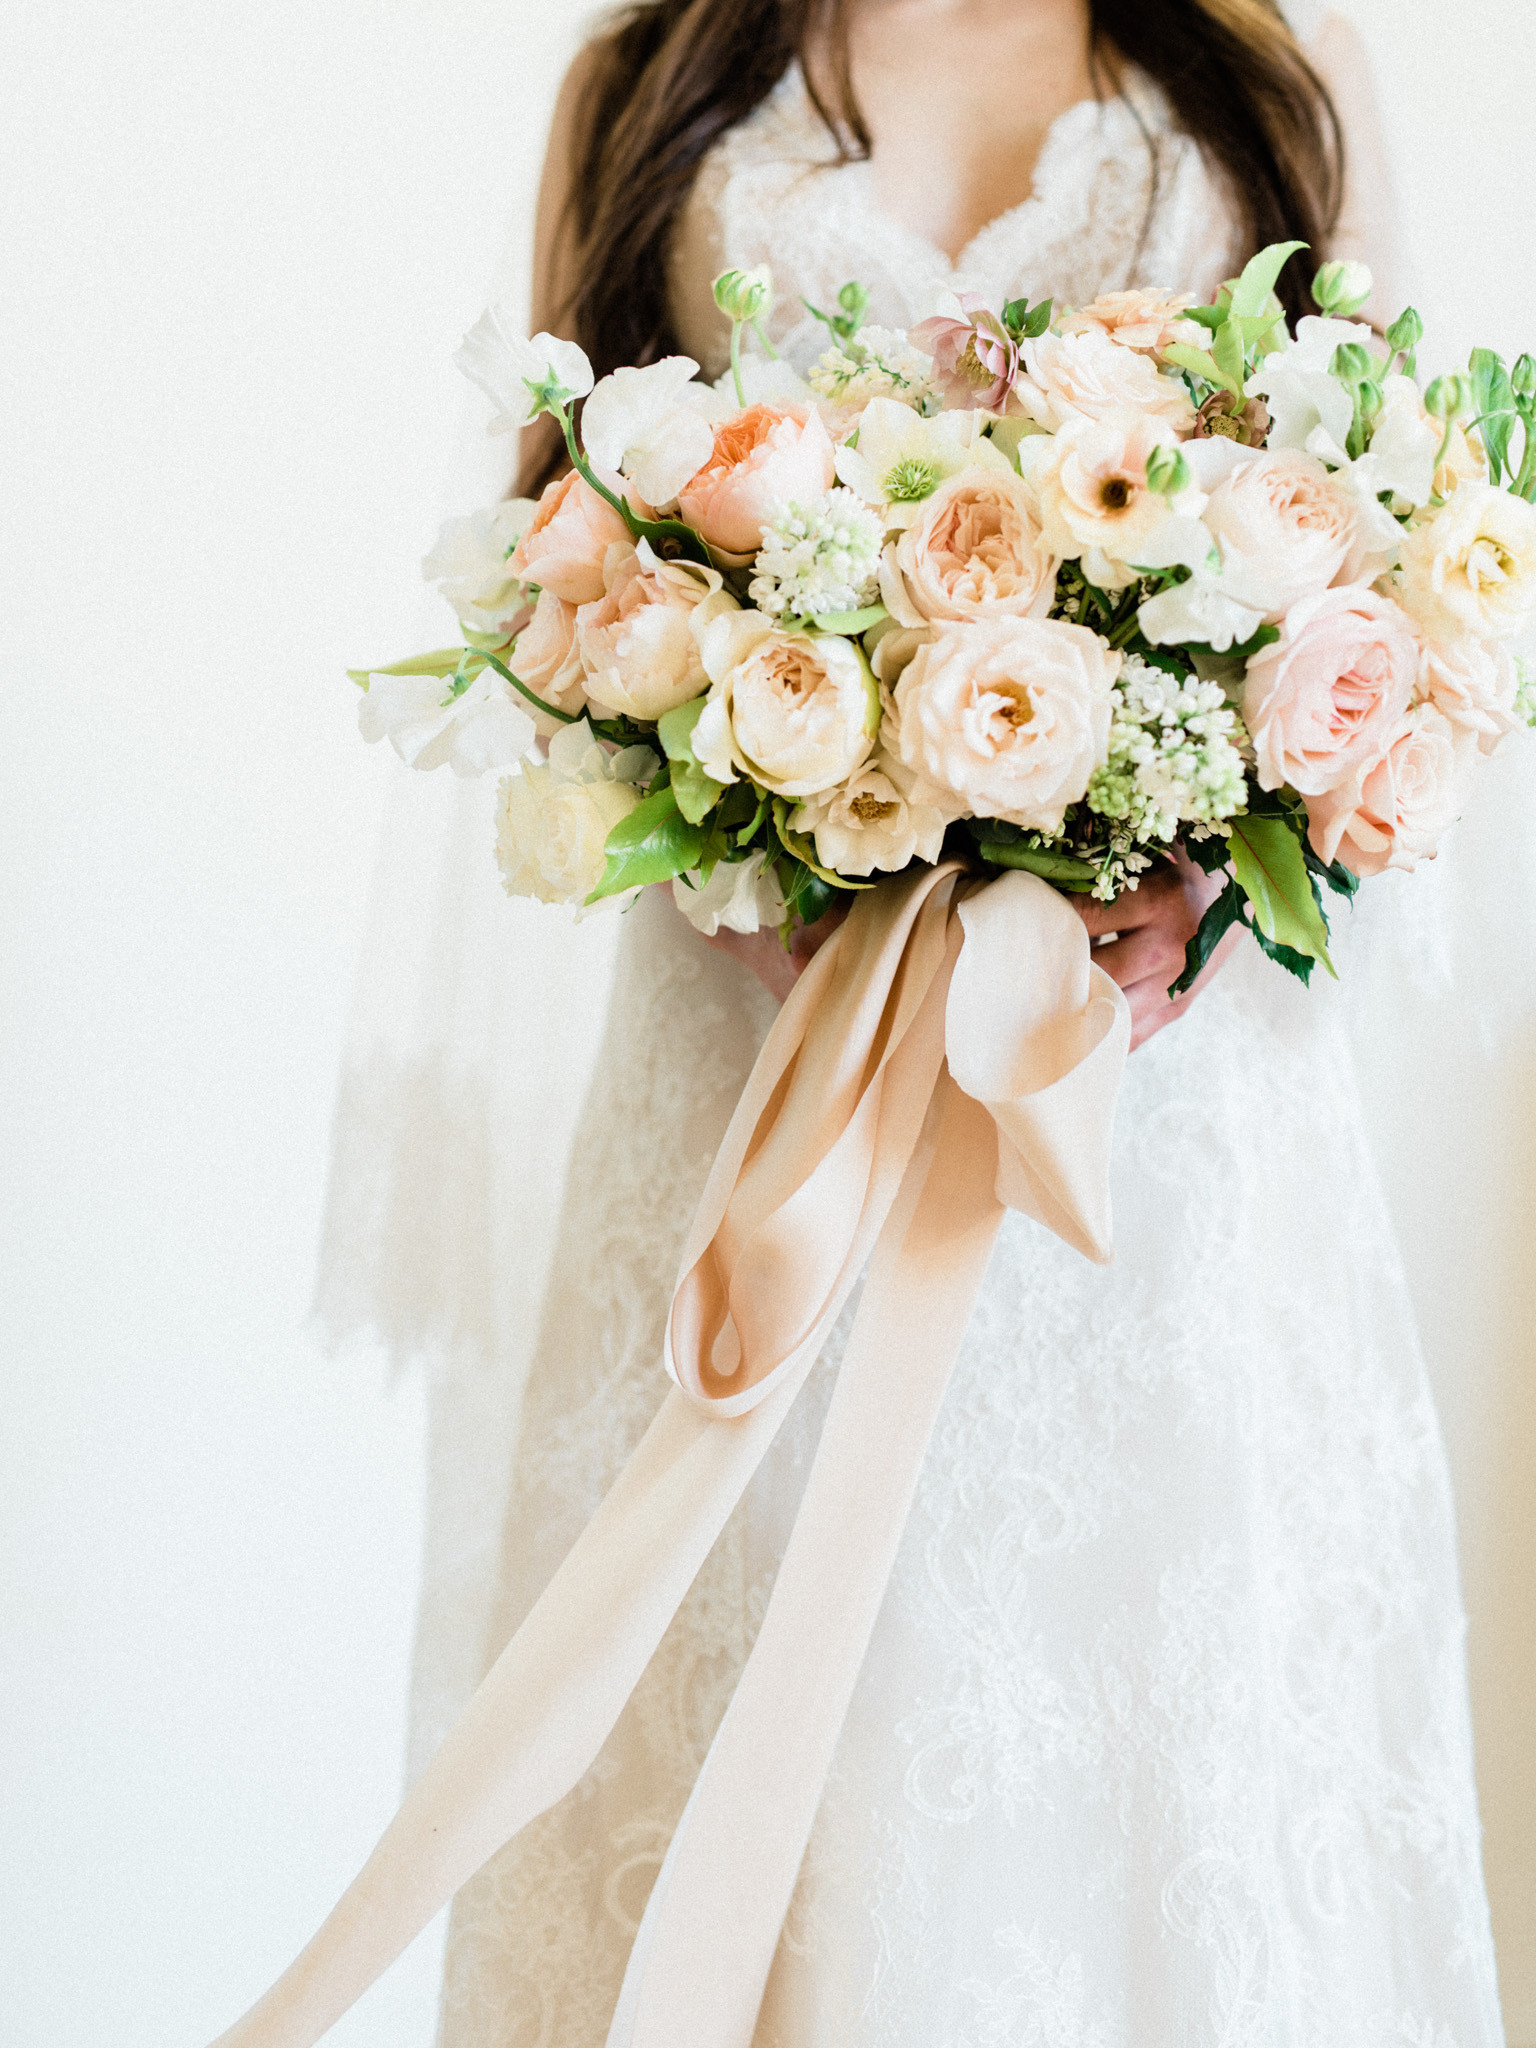 Spring bridal bouquet with garden roses, sweet pea, lilac and butterfly ranunculus. Photo: Kristen Kay